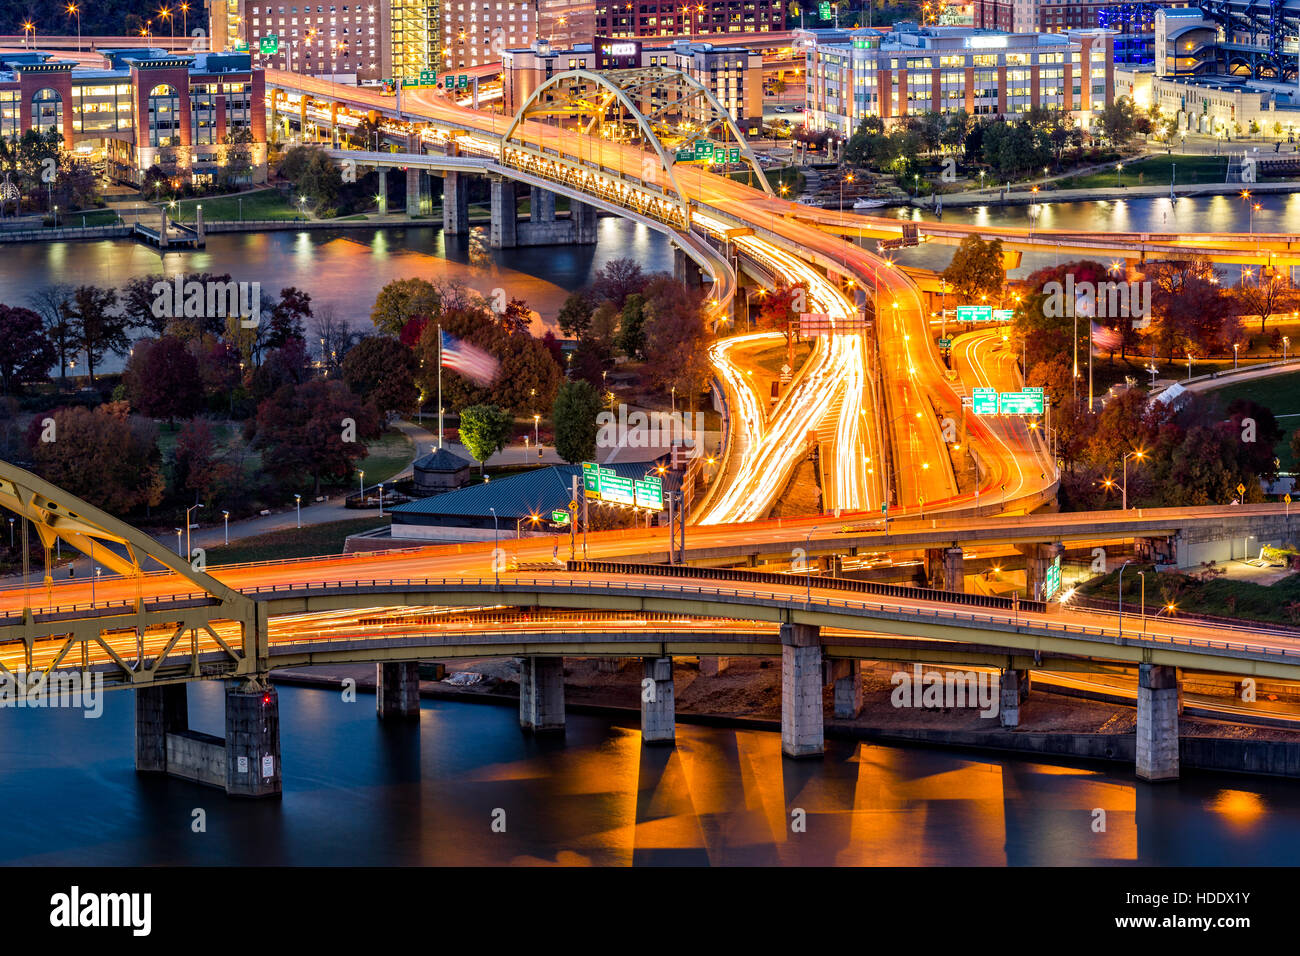 Pittsburgh traffic trails on the highway junction between Fort Duquesne and Fort Pitt bridges - Stock Image